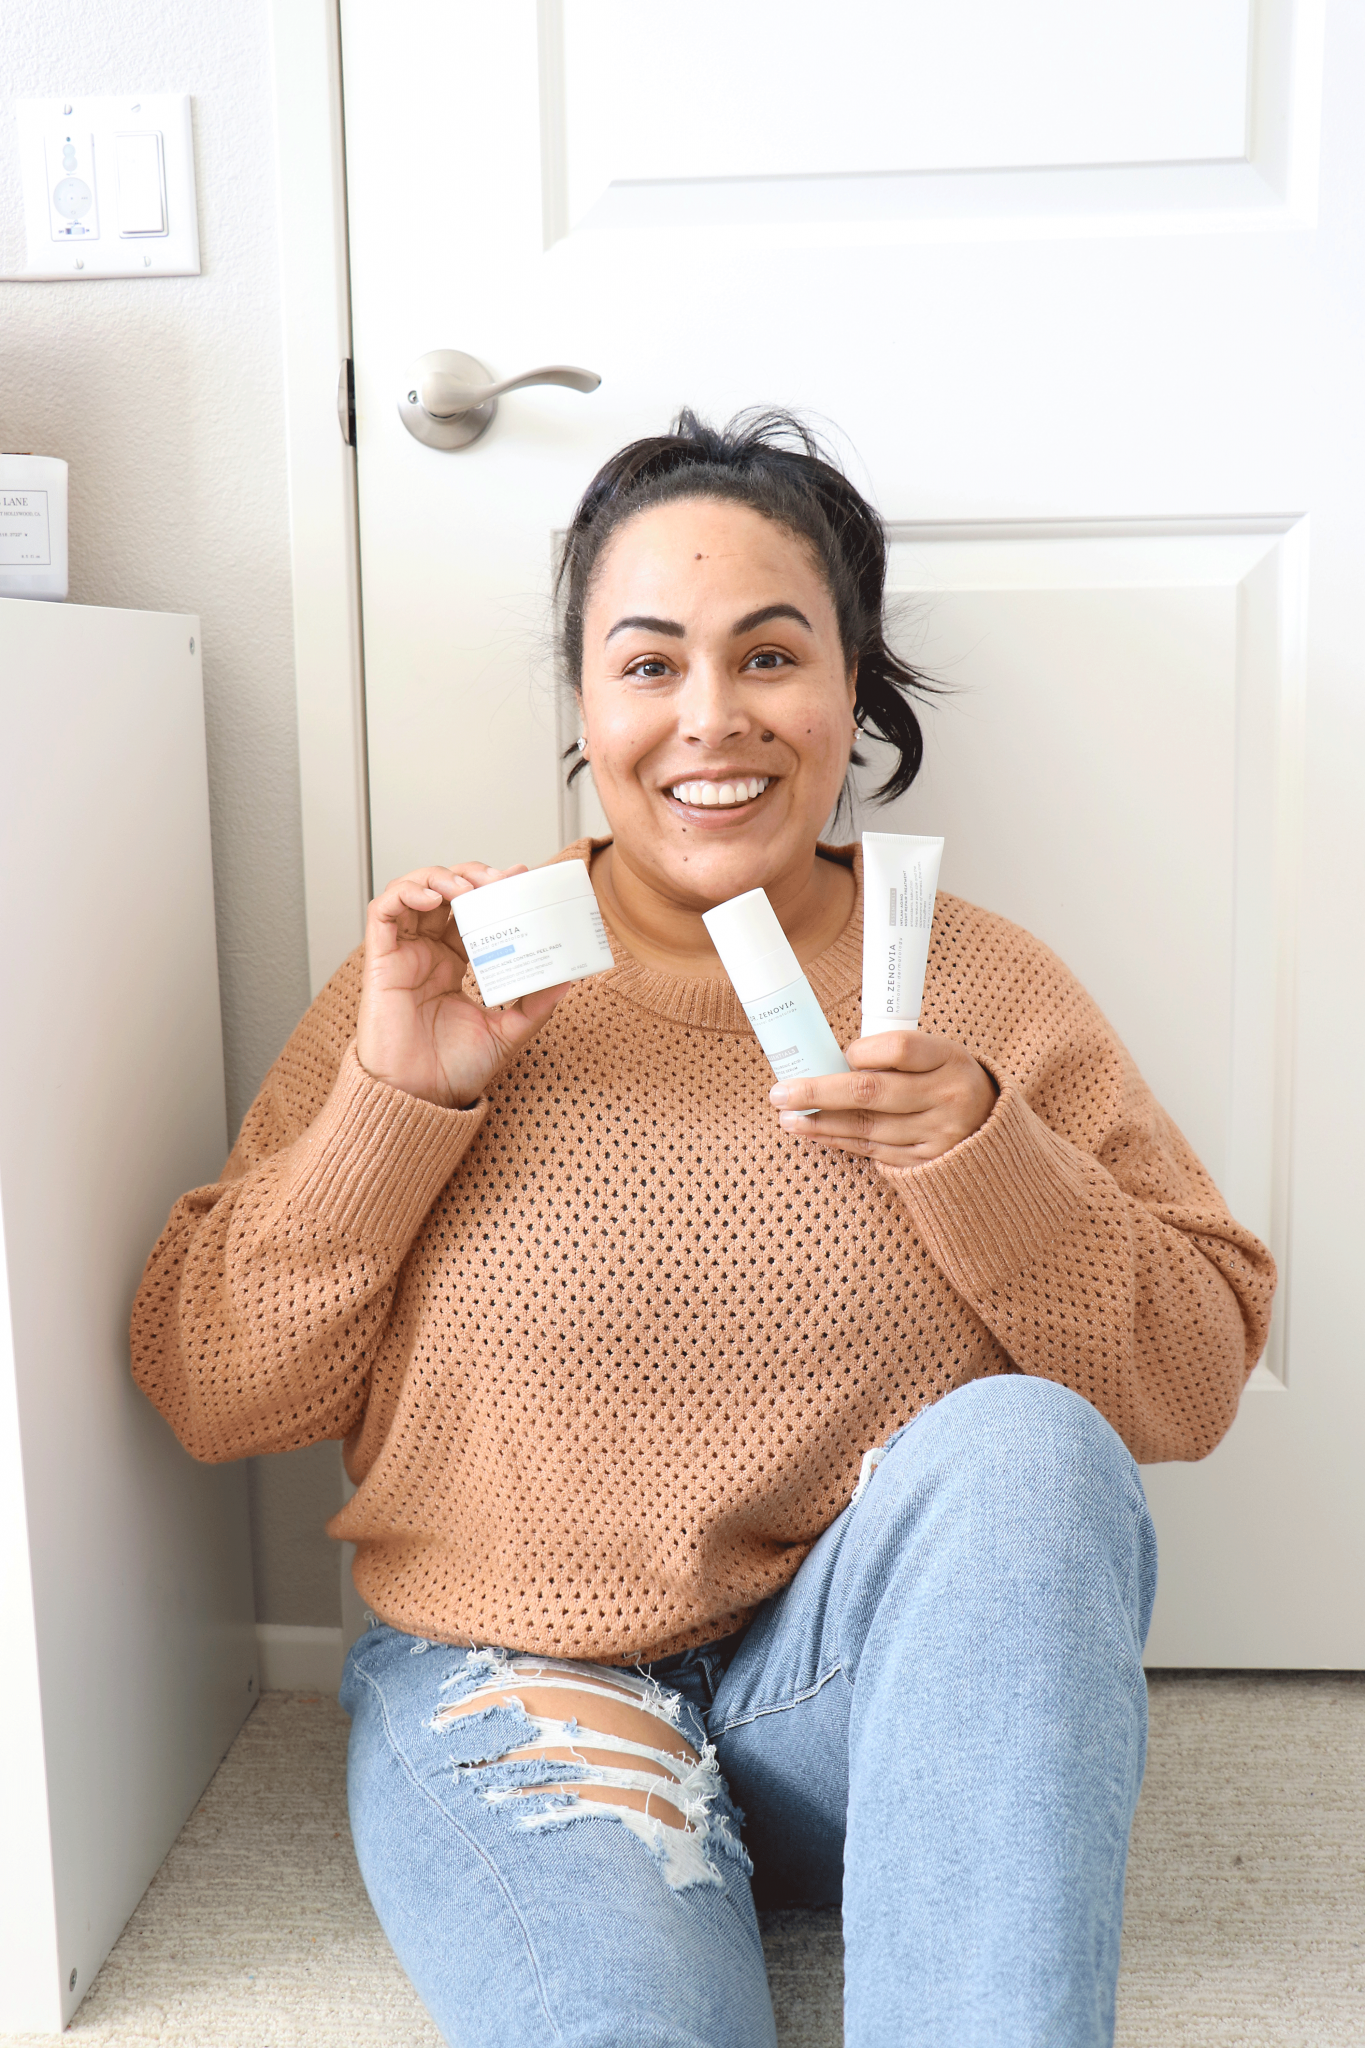 Looking to make a few skin investments this year? Los Angeles Blogger Jamie Lewis is sharing her top 10 skin investments she made in 2020. Click to see them HERE!